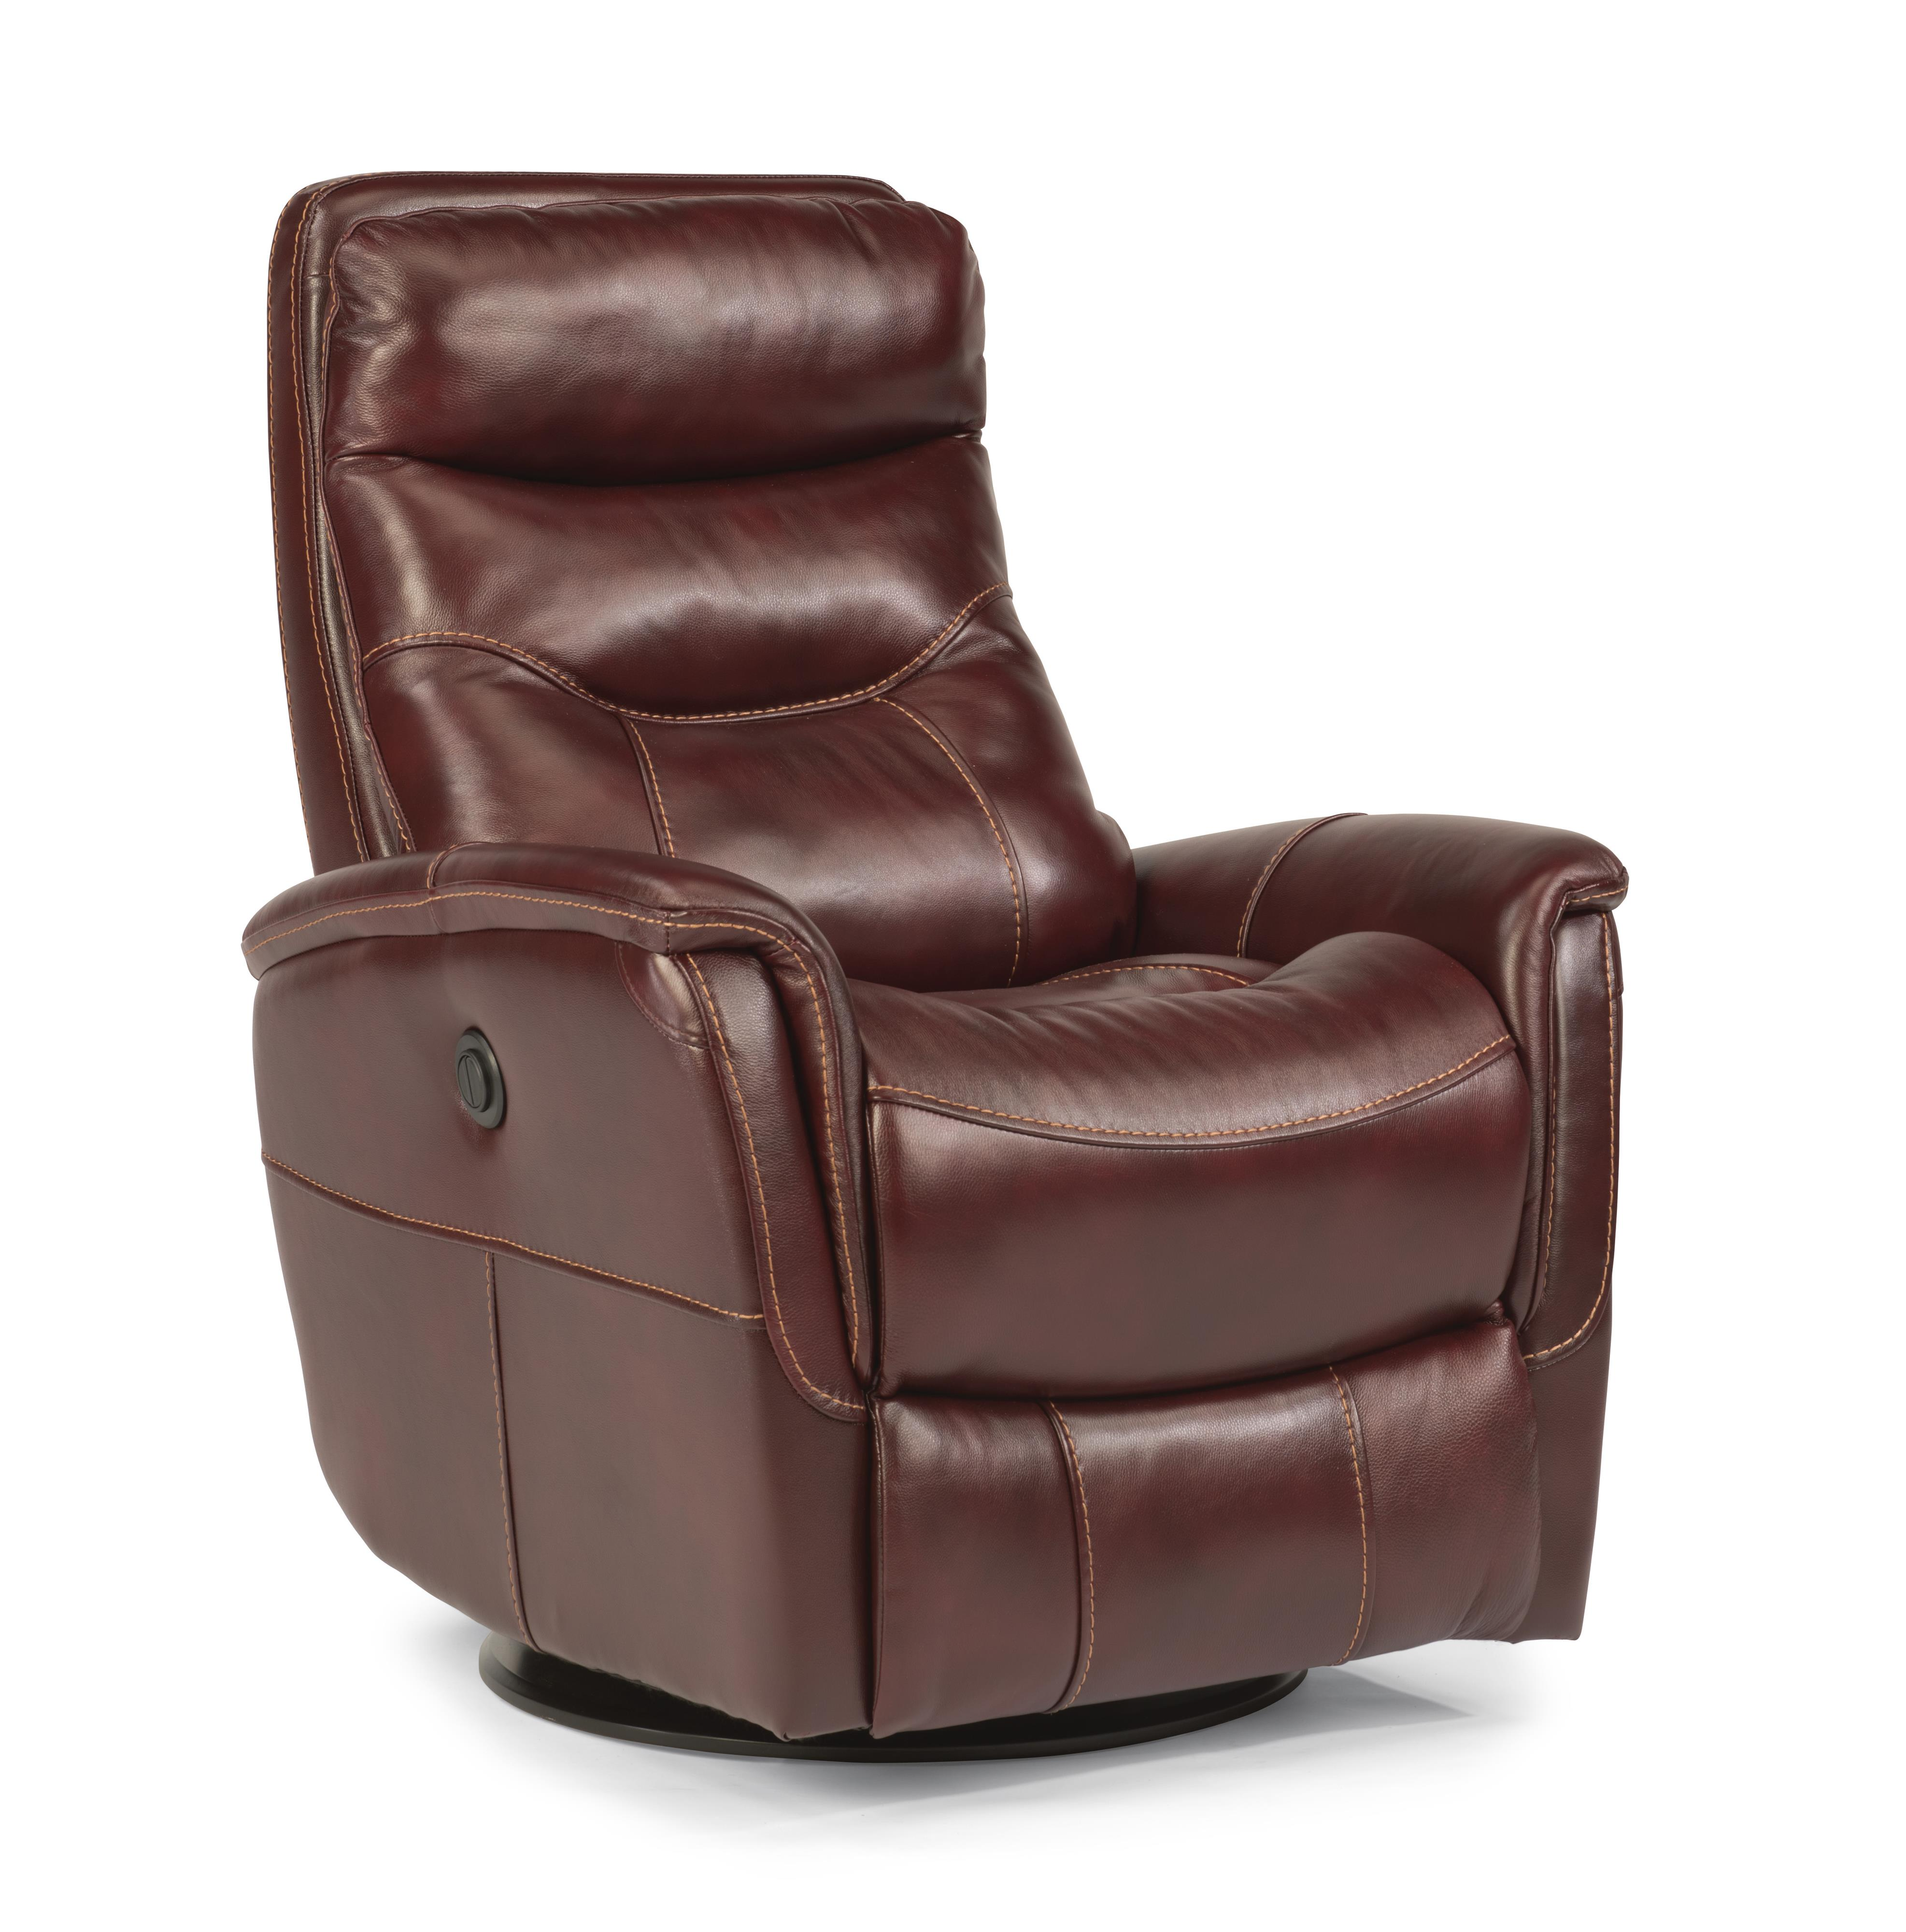 chairs that swivel and recline chair massage nyc flexsteel latitudes go anywhere recliners 1393 53pk alden